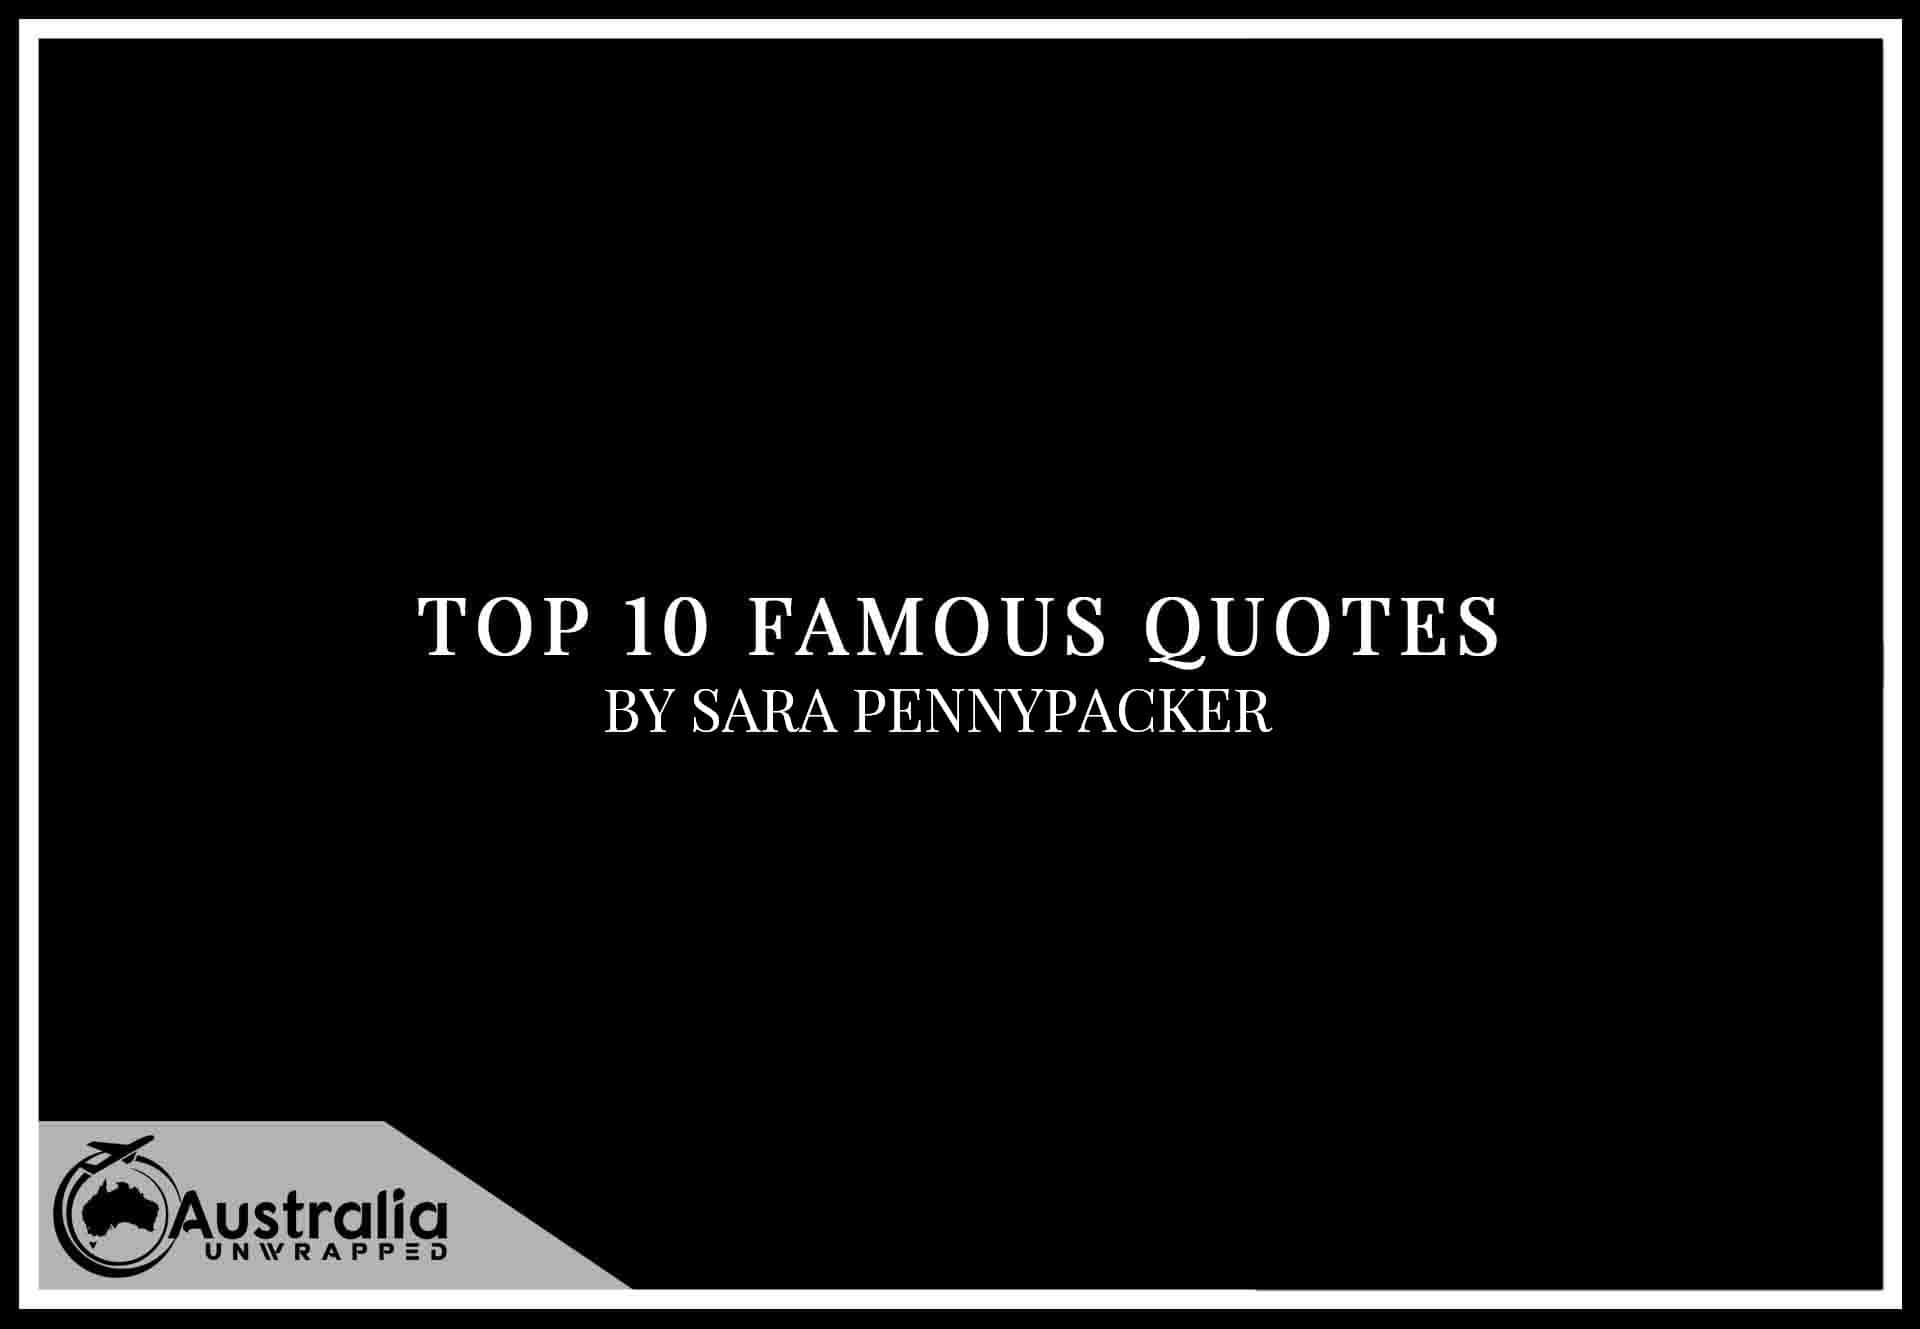 Top 10 Famous Quotes by Author Sara Pennypacker